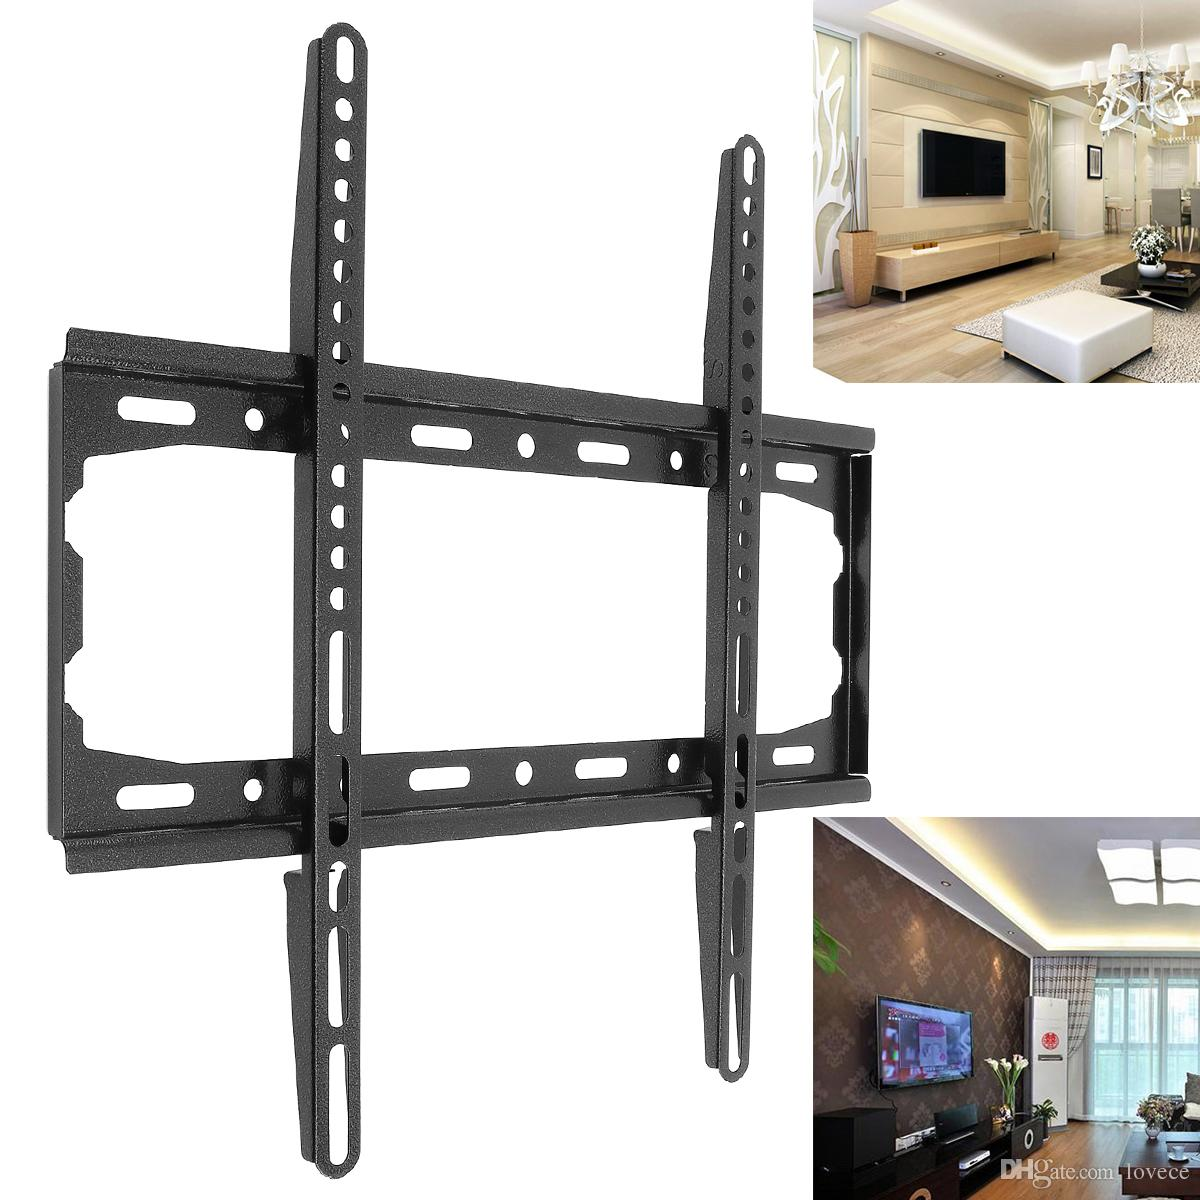 universal 45kg tv wall mount bracket fixed flat panel tv frame for 26 55 inch lcd led monitor flat panel hmp 60h rh dhgate com